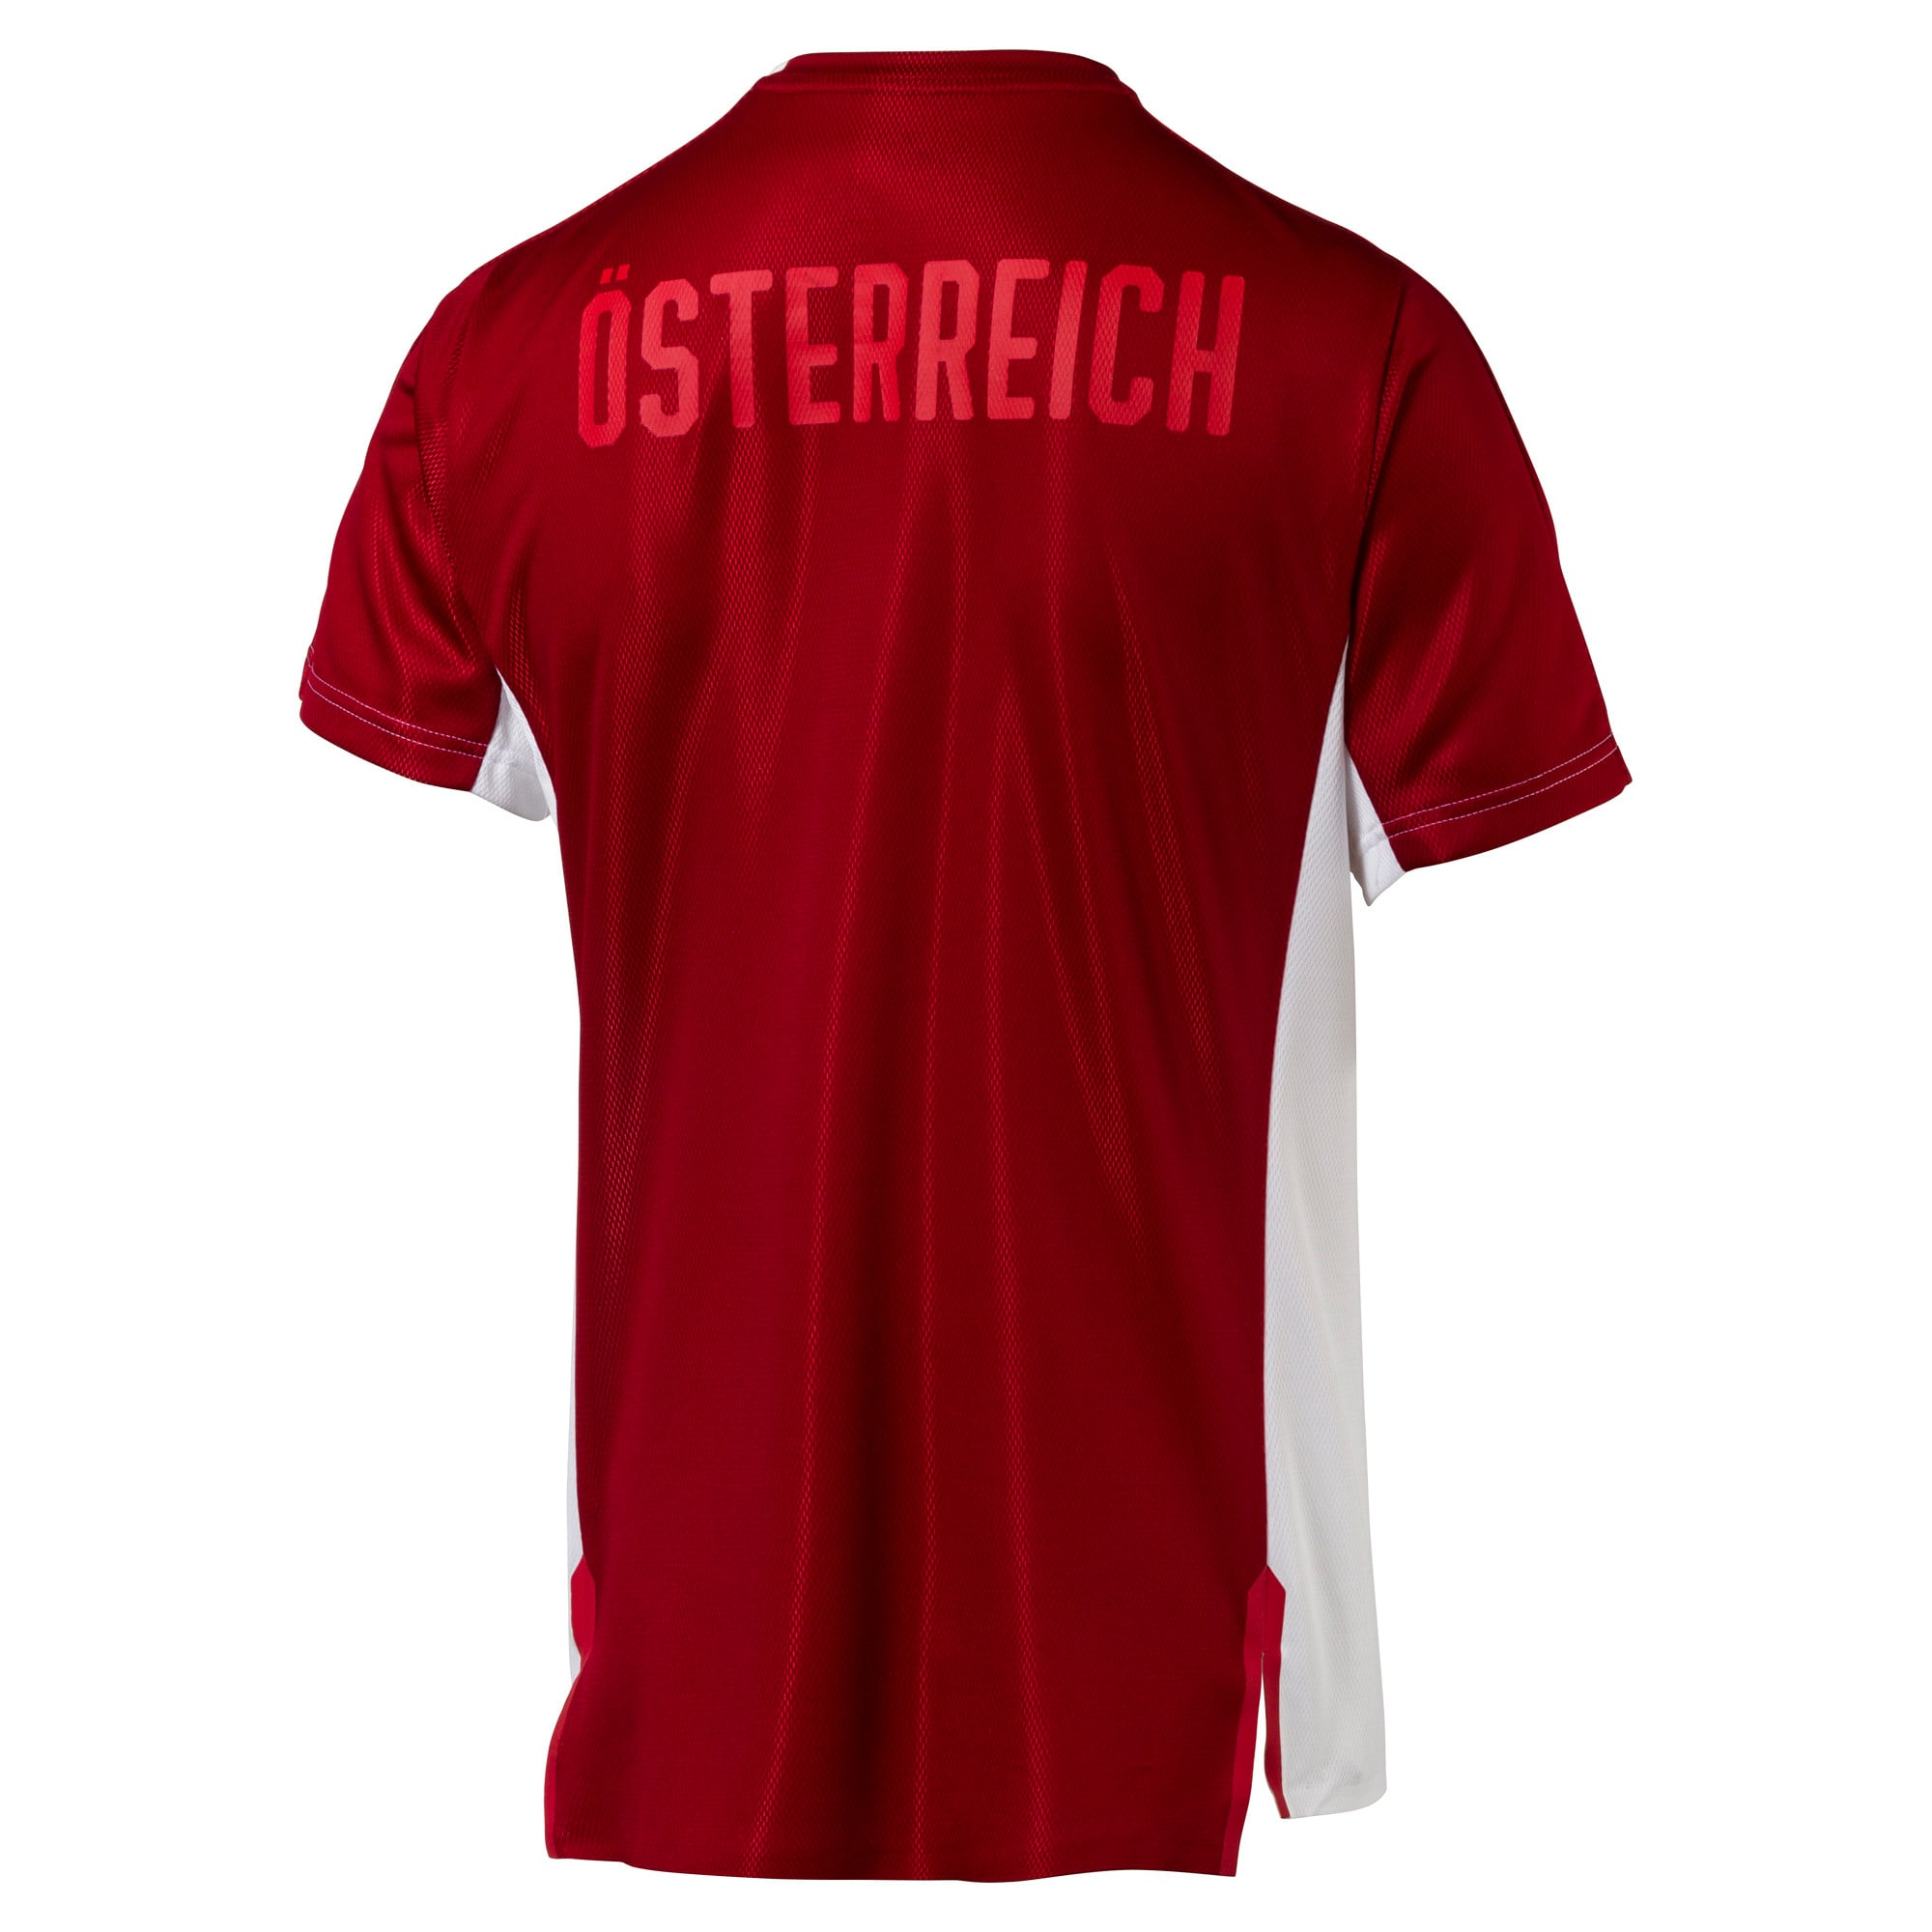 Thumbnail 4 of Austria Men's Stadium Jersey, Puma White-Red Dahlia, medium